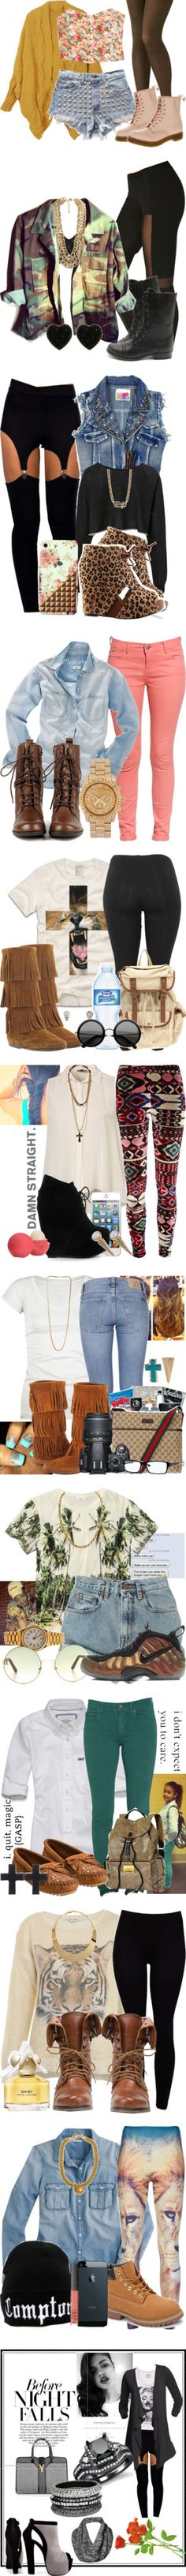 """PART 10 ! THIS IS EXCLUSIVE"" by nay2fly ❤ liked on Polyvore"